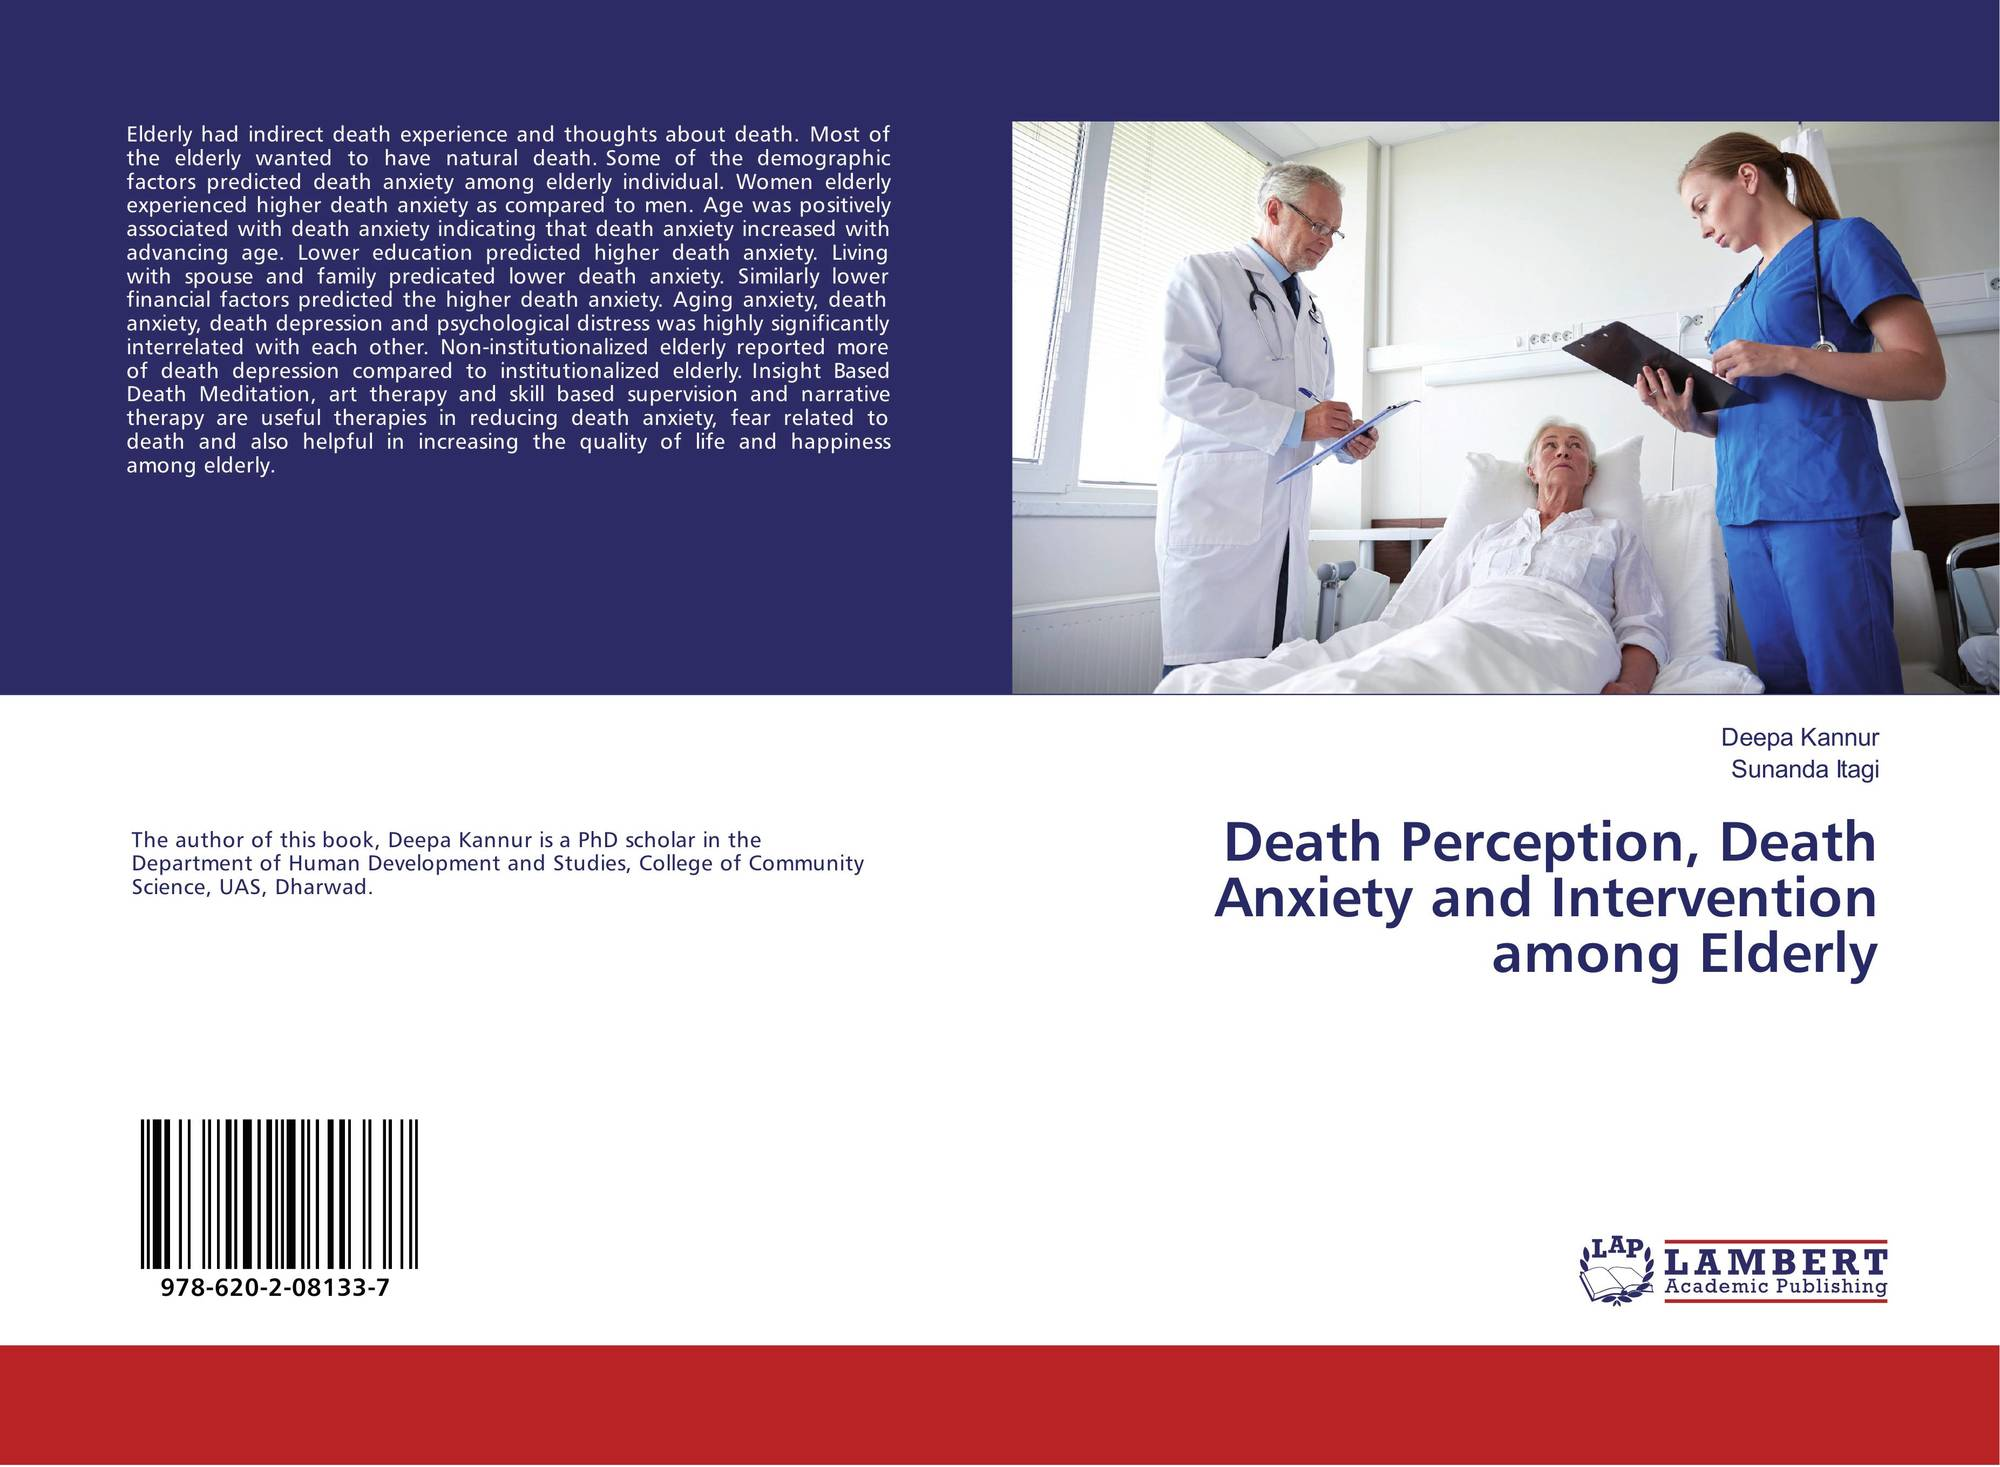 perceptions of death among elderly patients essay Perception of death and health locus of control between young adults and older adults in terms of their perception of death and whether matrix among tdas.